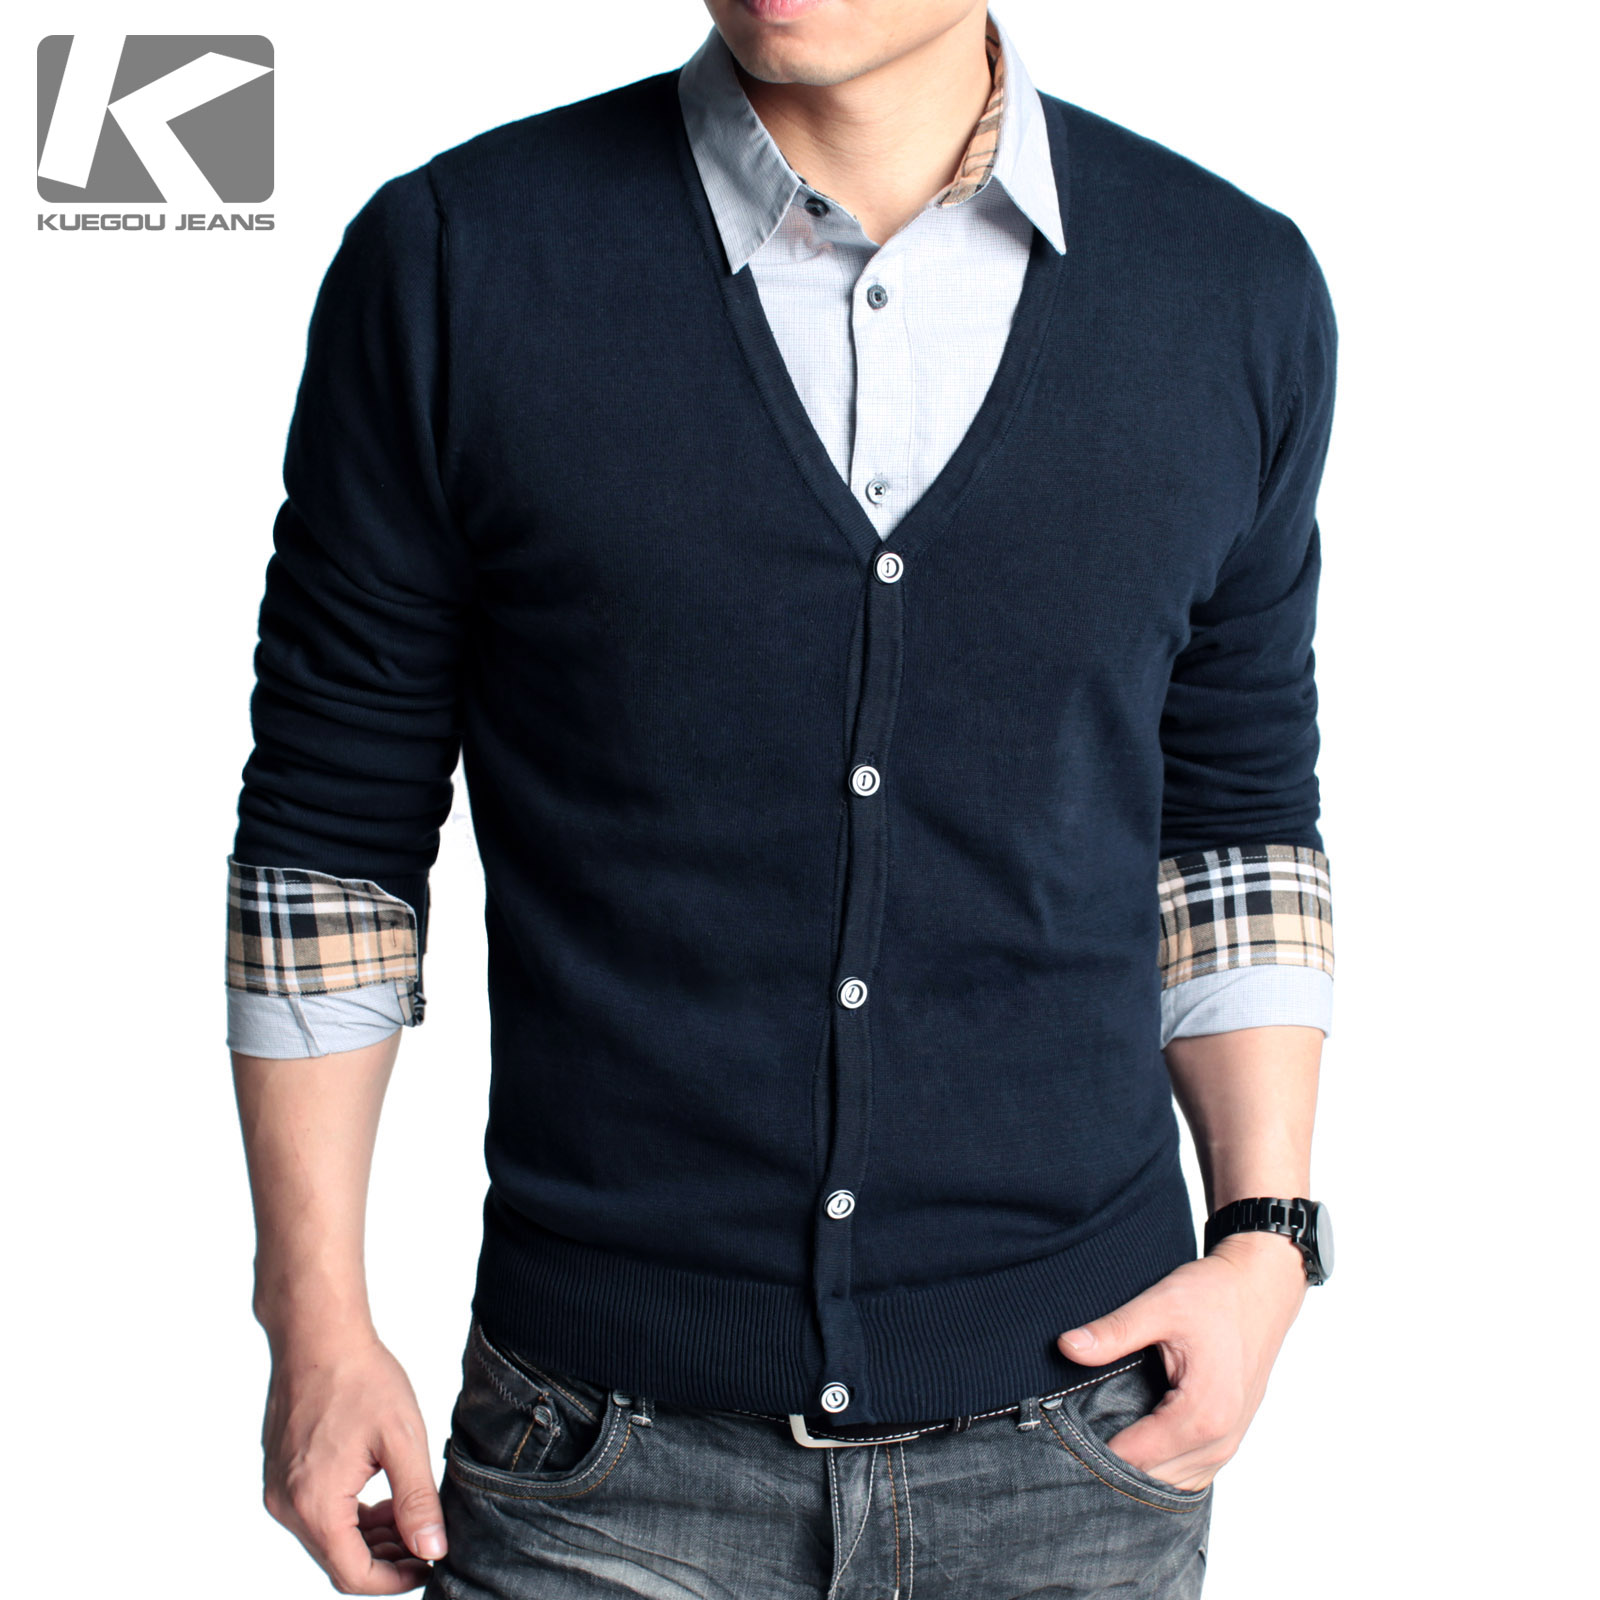 Hot Selling Men's Sweater Fashion Cardigan 100% Cotton ...